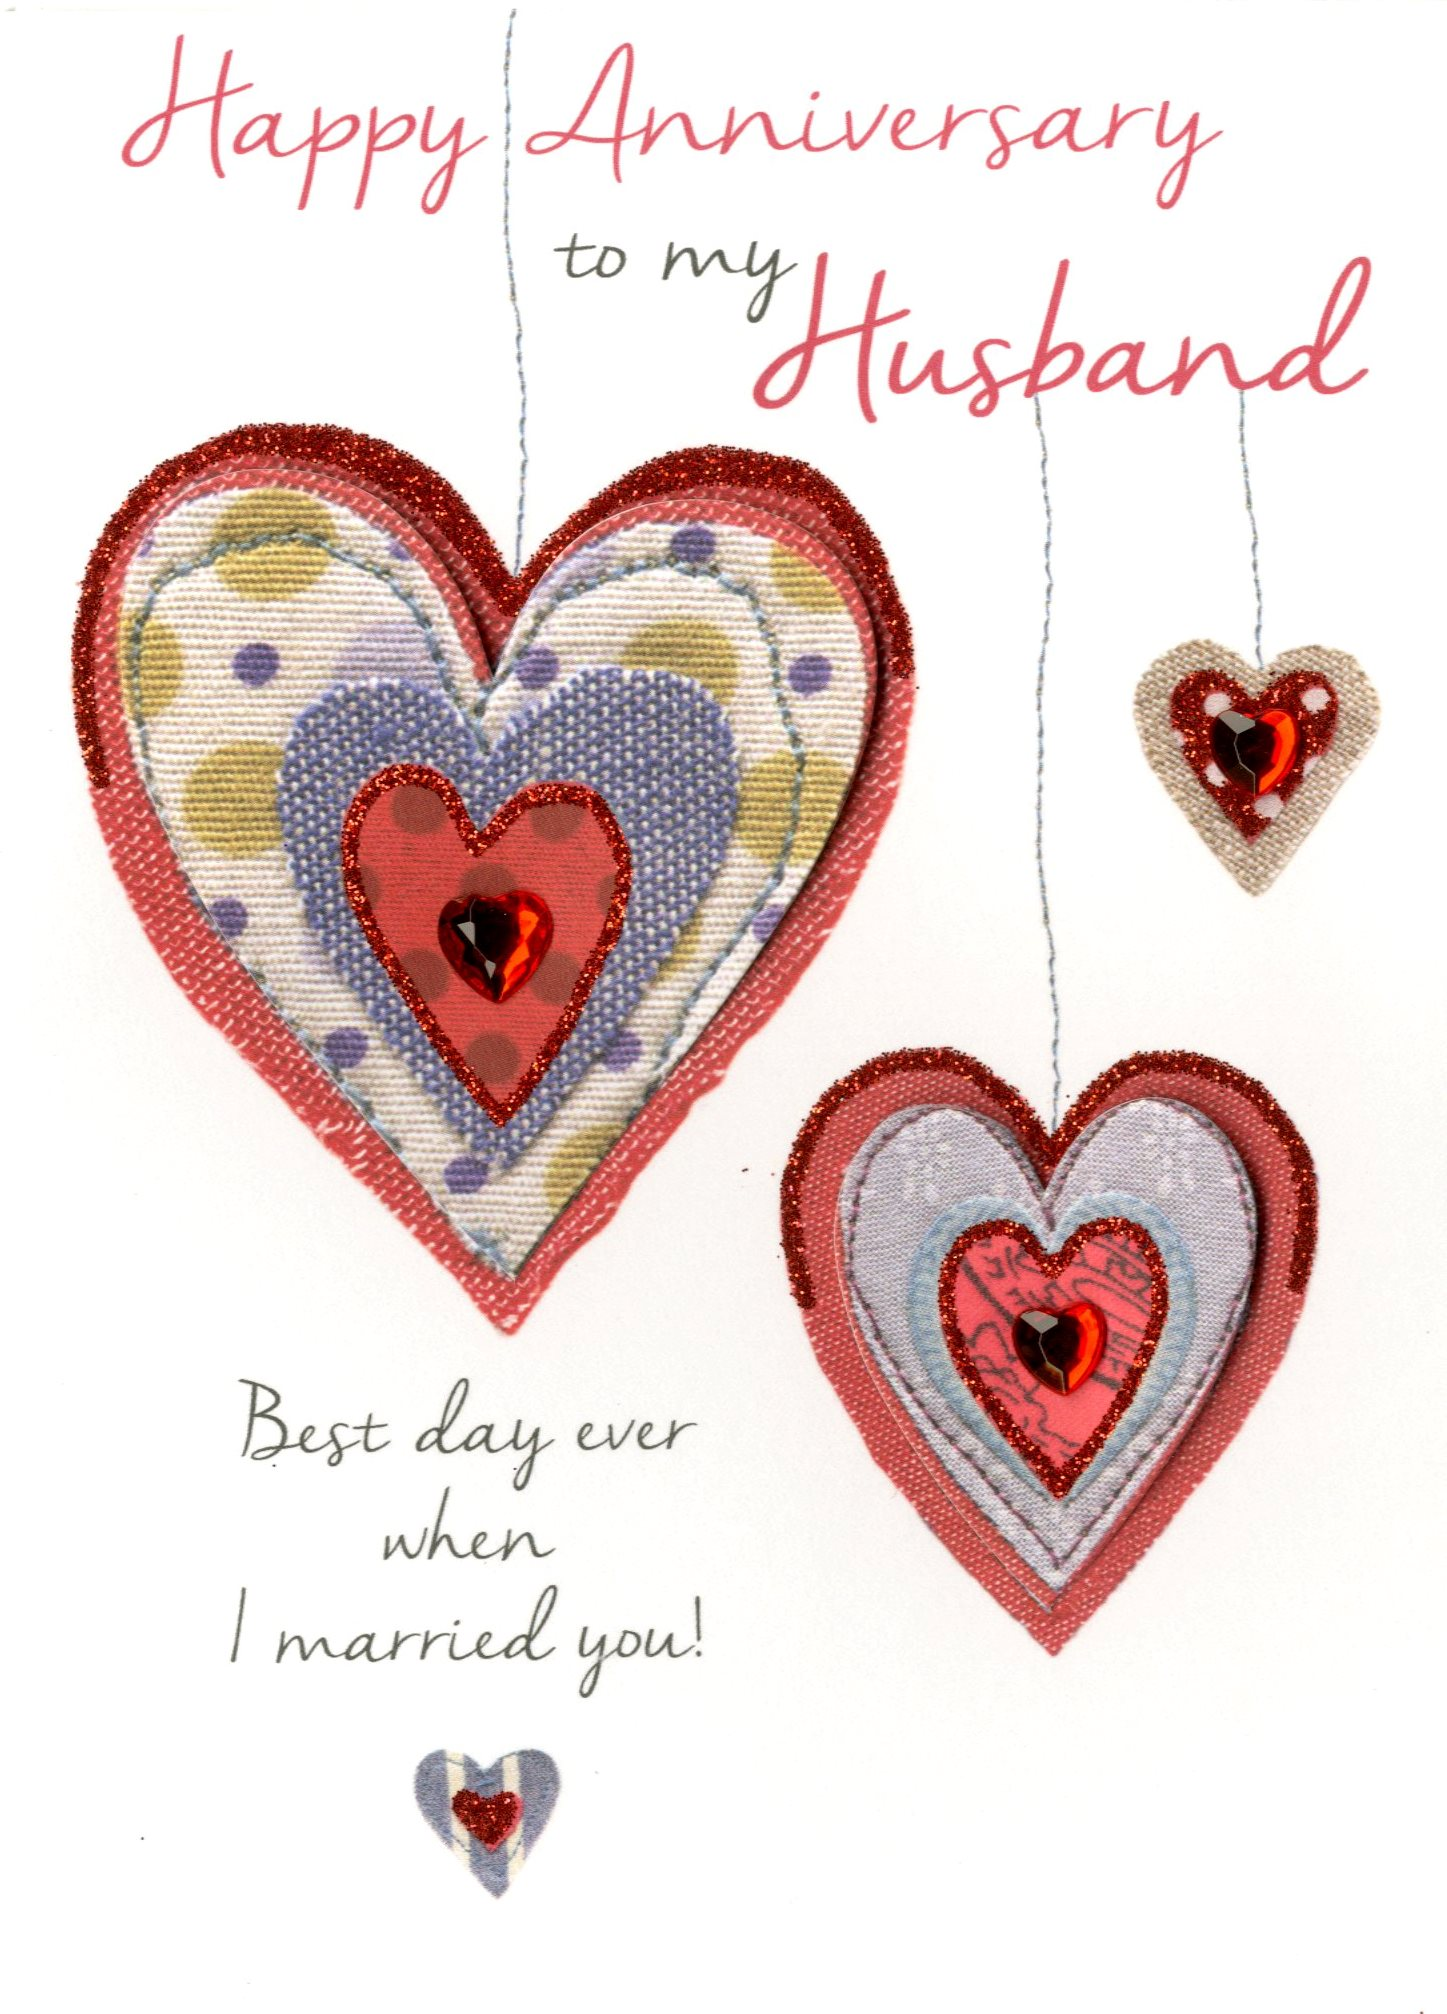 Husband happy anniversary greeting card cards love kates husband happy anniversary greeting card m4hsunfo